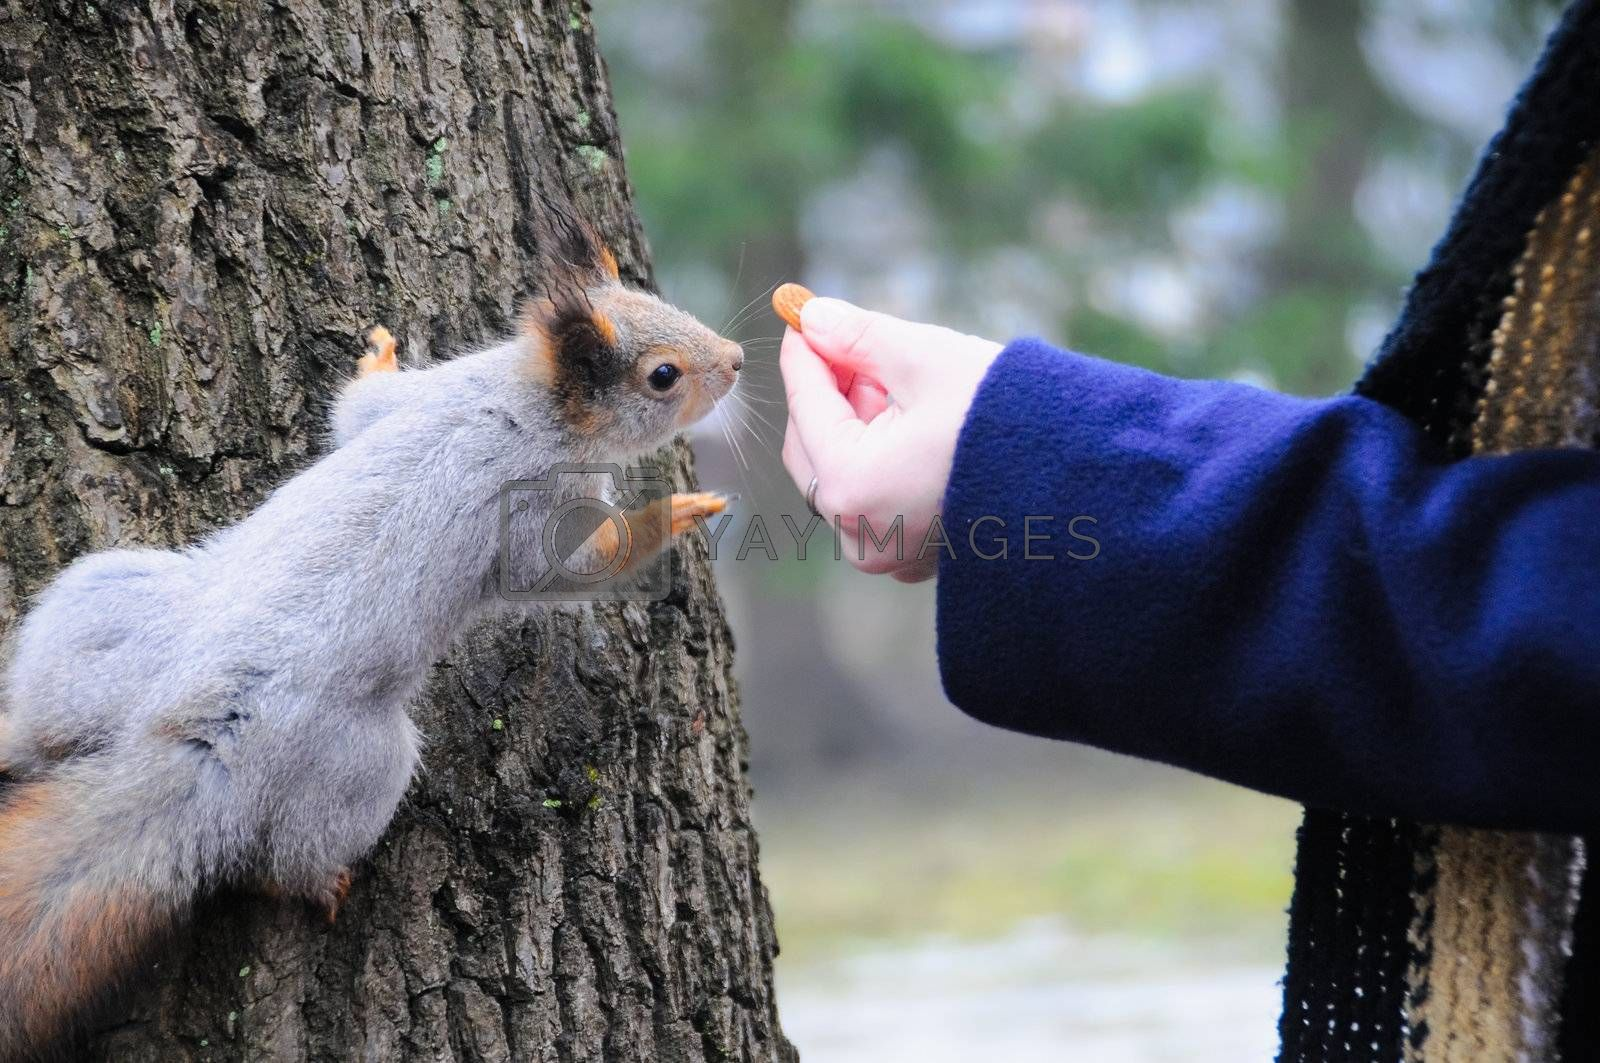 A grey squirrel being hand fed in a park